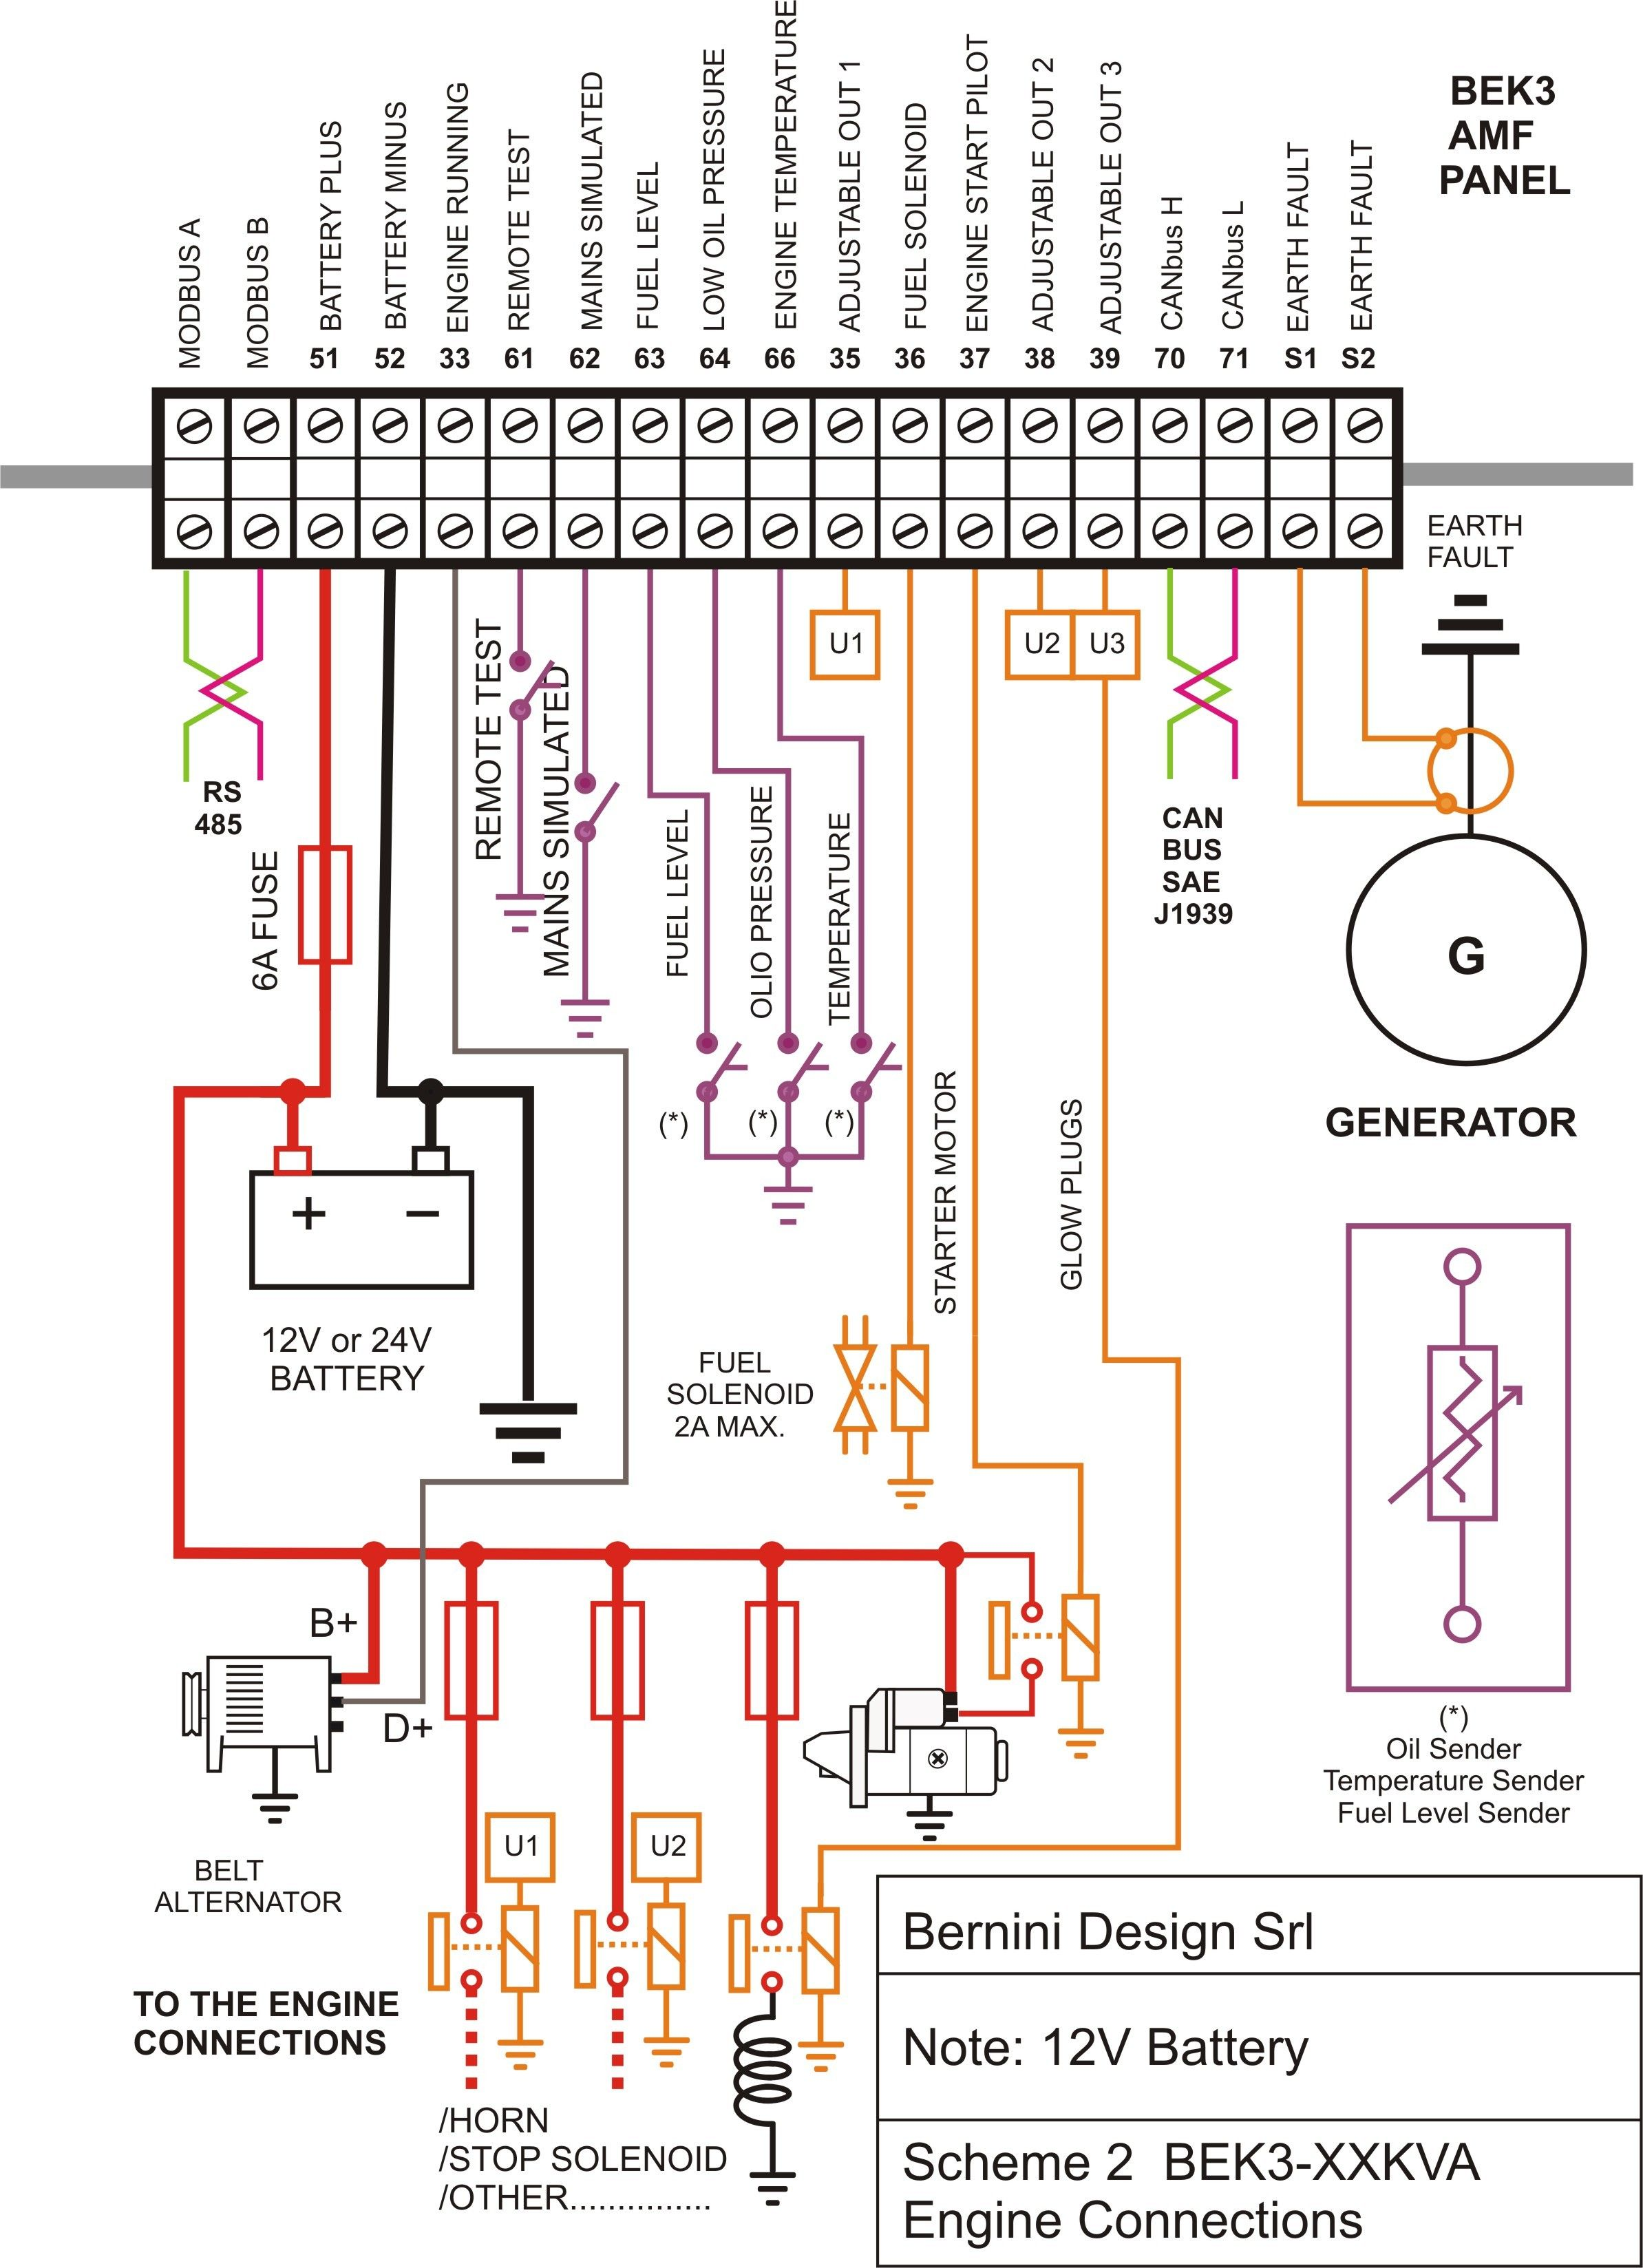 Generator Wiring Diagram And Electrical Schematics Pdf Download Electrical Circuit Diagram Electrical Wiring Diagram Circuit Diagram